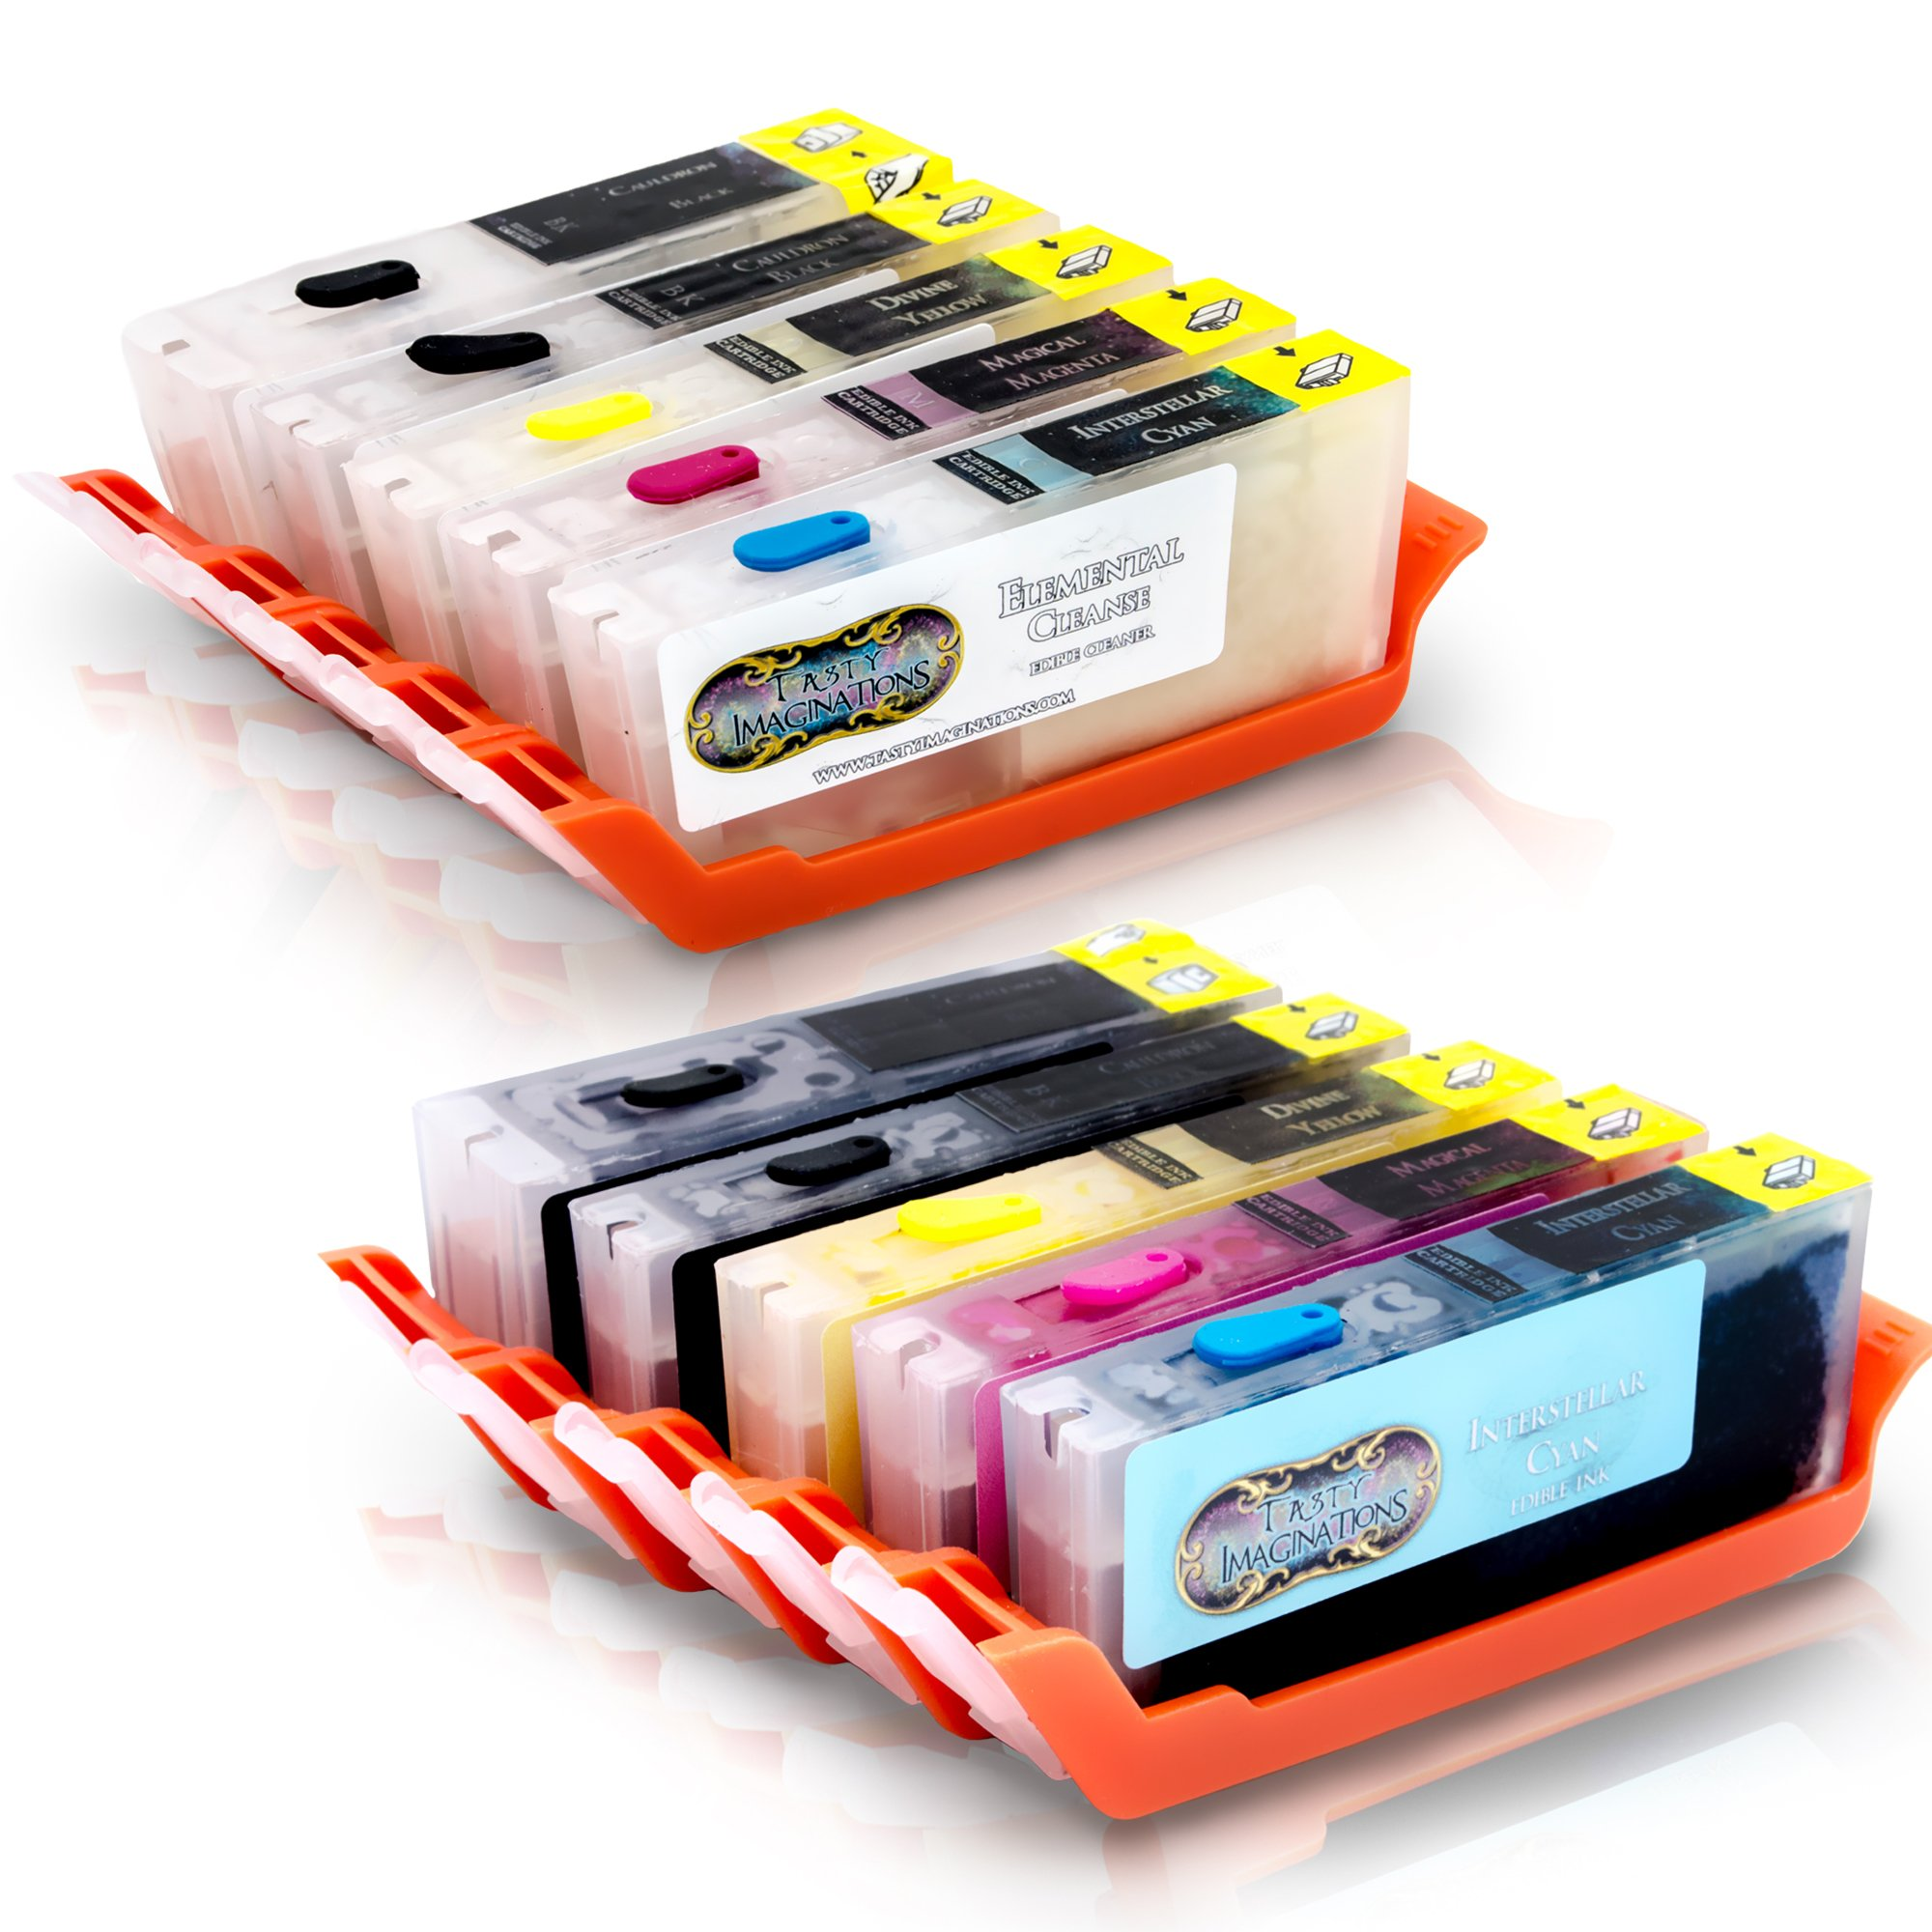 Tasty Imaginations Edible Ink and Cleaning Cartridges for Canon CLI-251 & PGI-250 5 Pack works with MG5420, MG5520, MG6420, MG6620, MX922 Cake Ink FDA Compliant (Combo Pack)